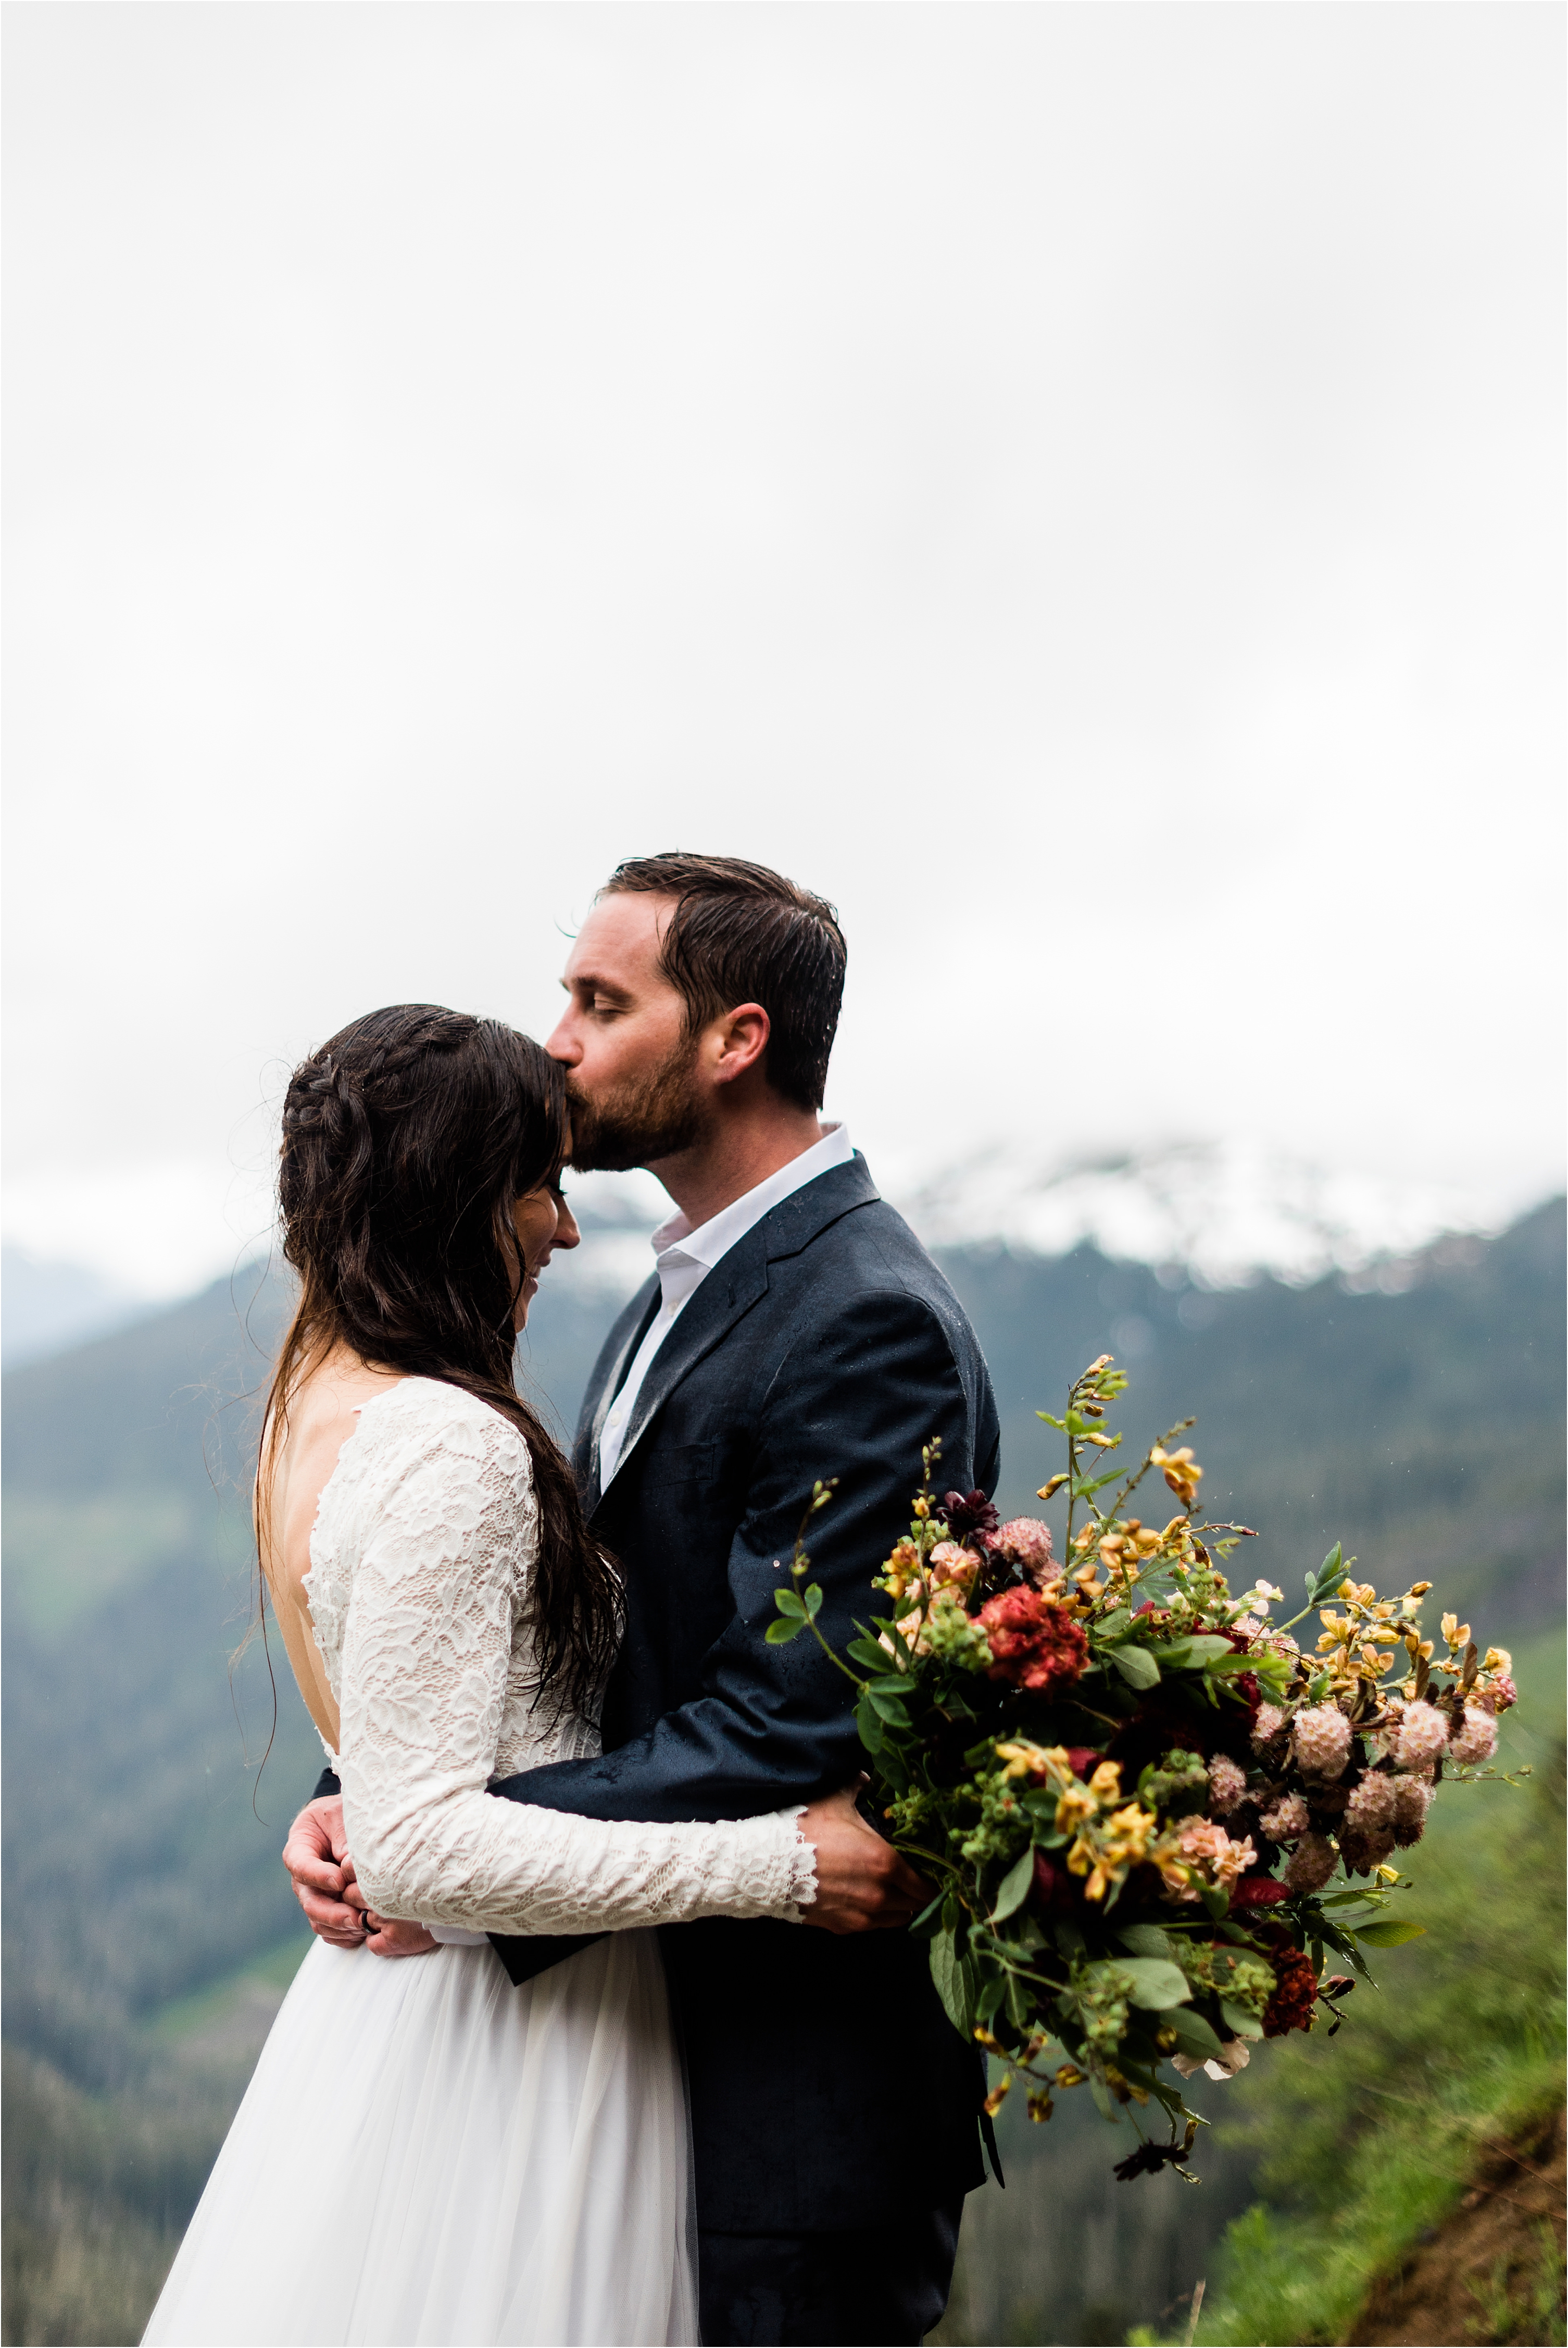 Mt. Baker elopement in the North Cascades. Image by Forthright Photo, Seattle Wedding Photographers.